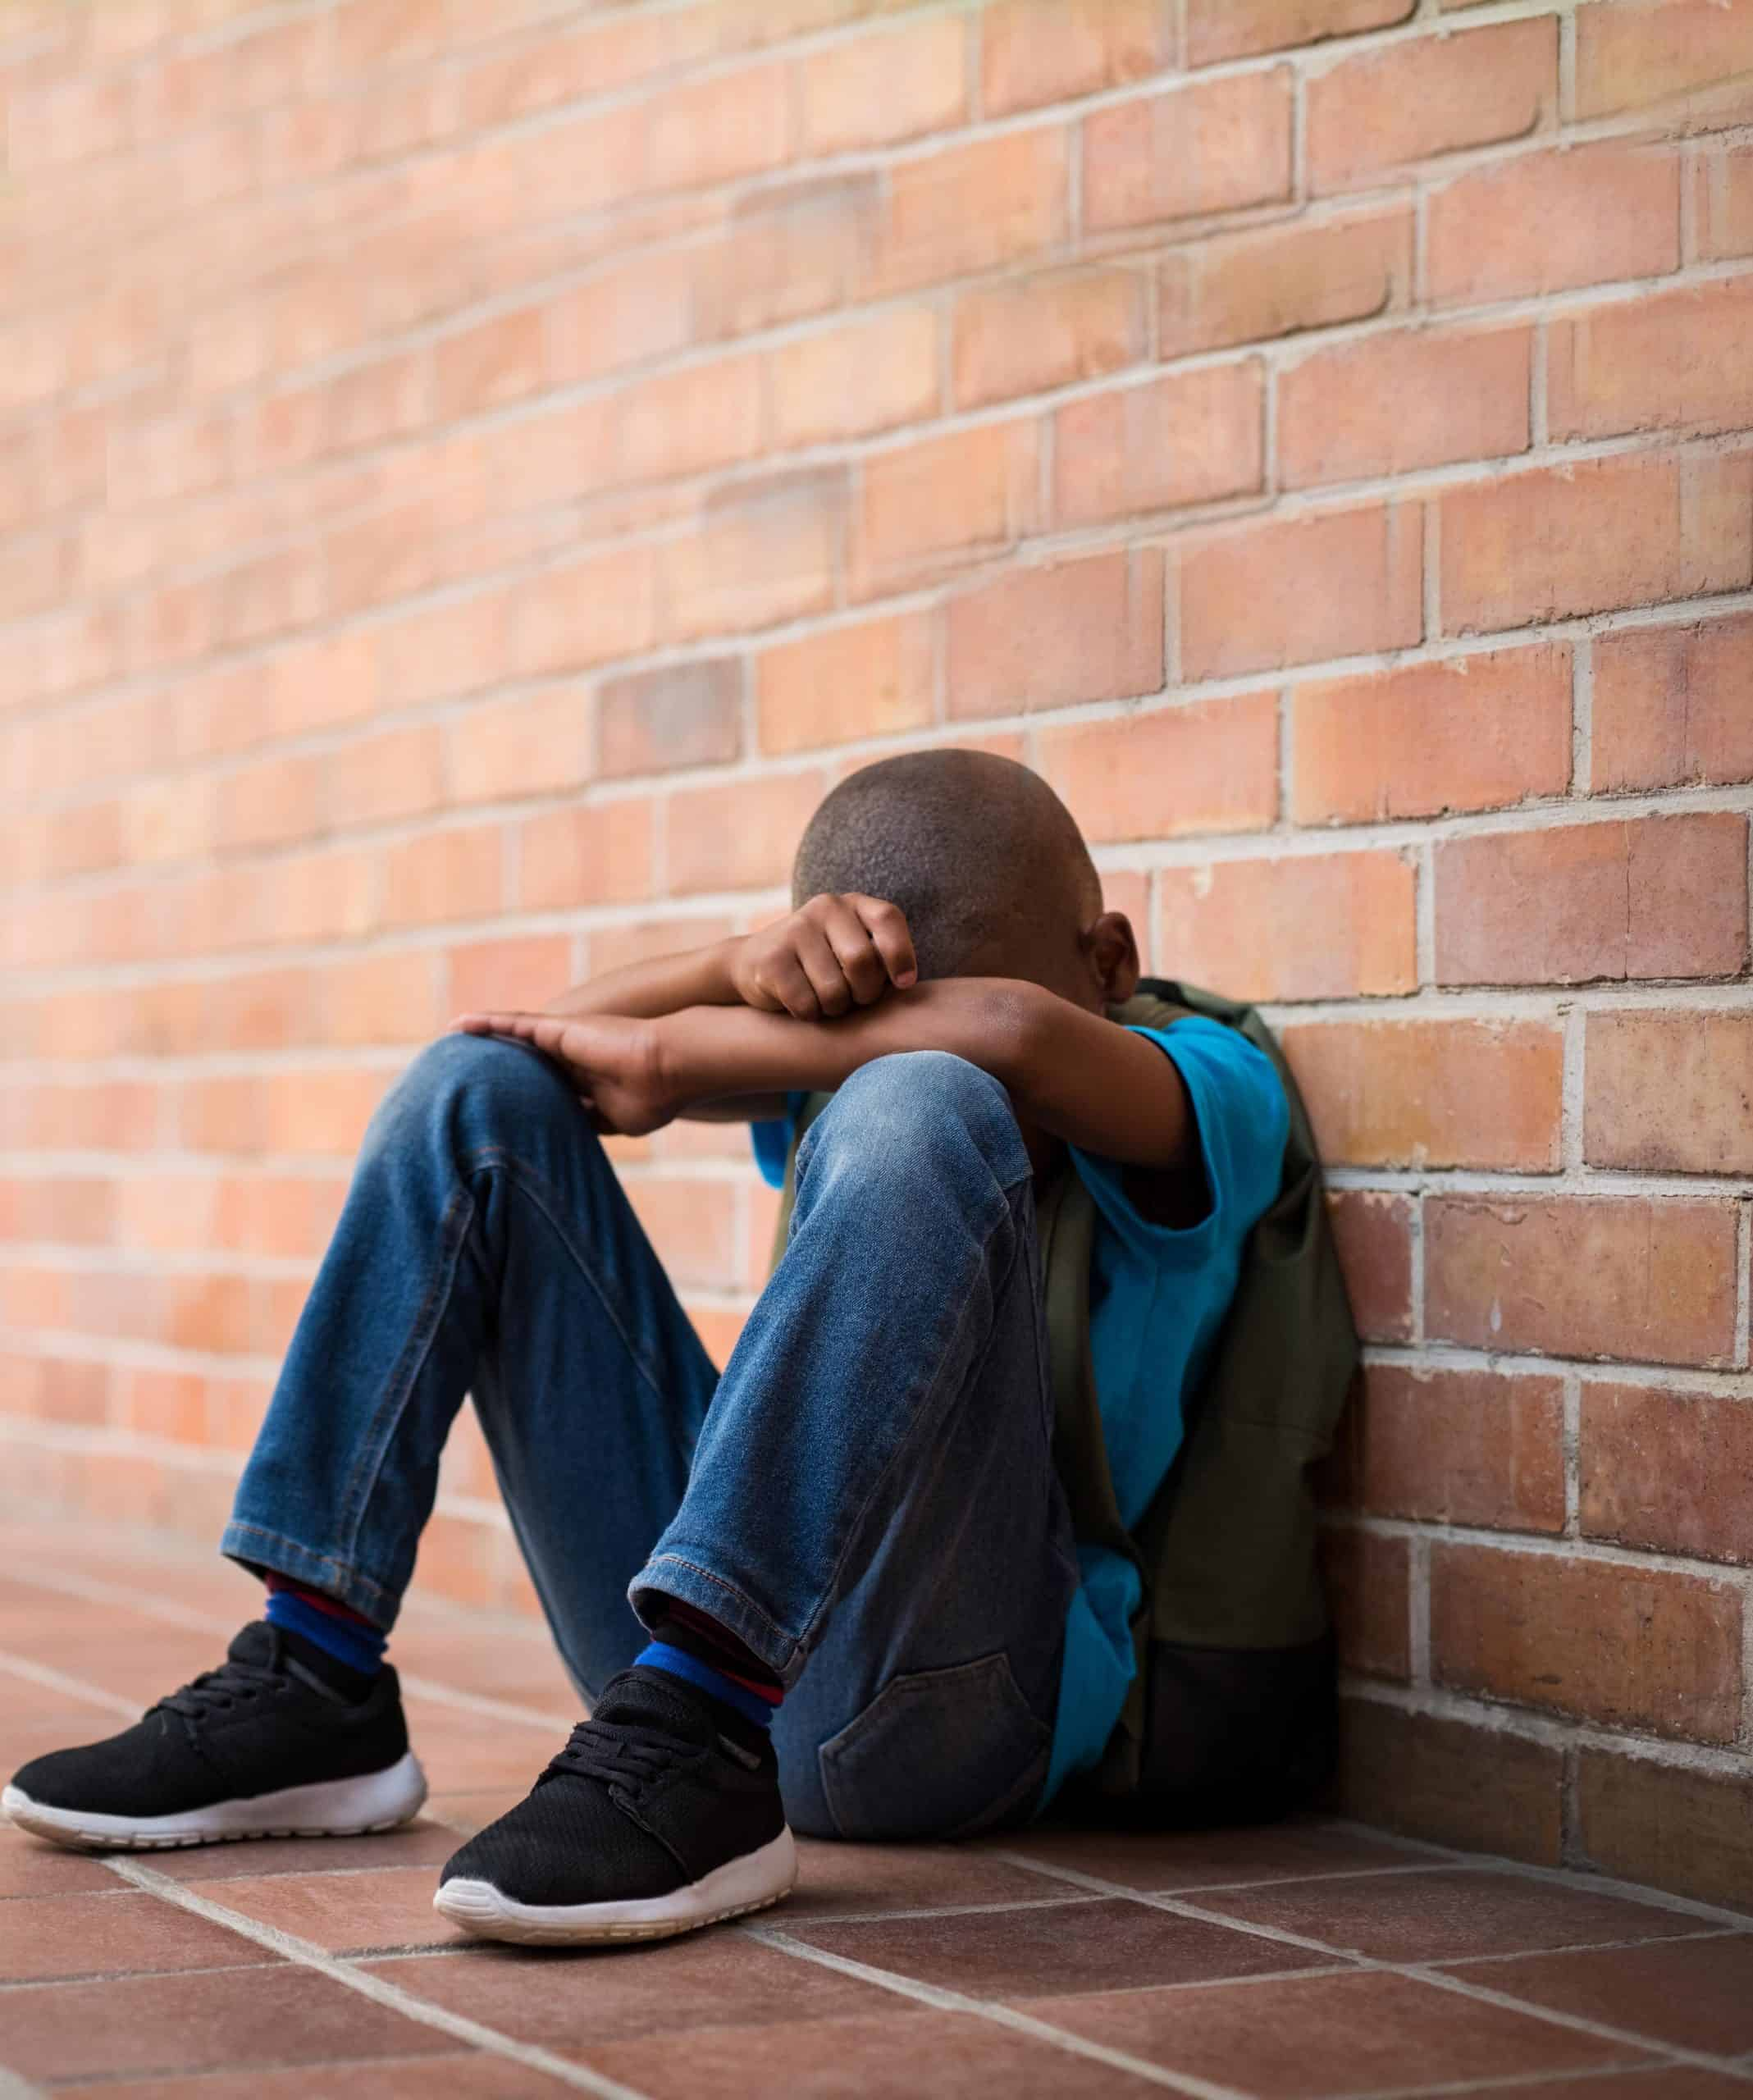 Innate-Therapies-the-effects-of-bullying-blog-image-1